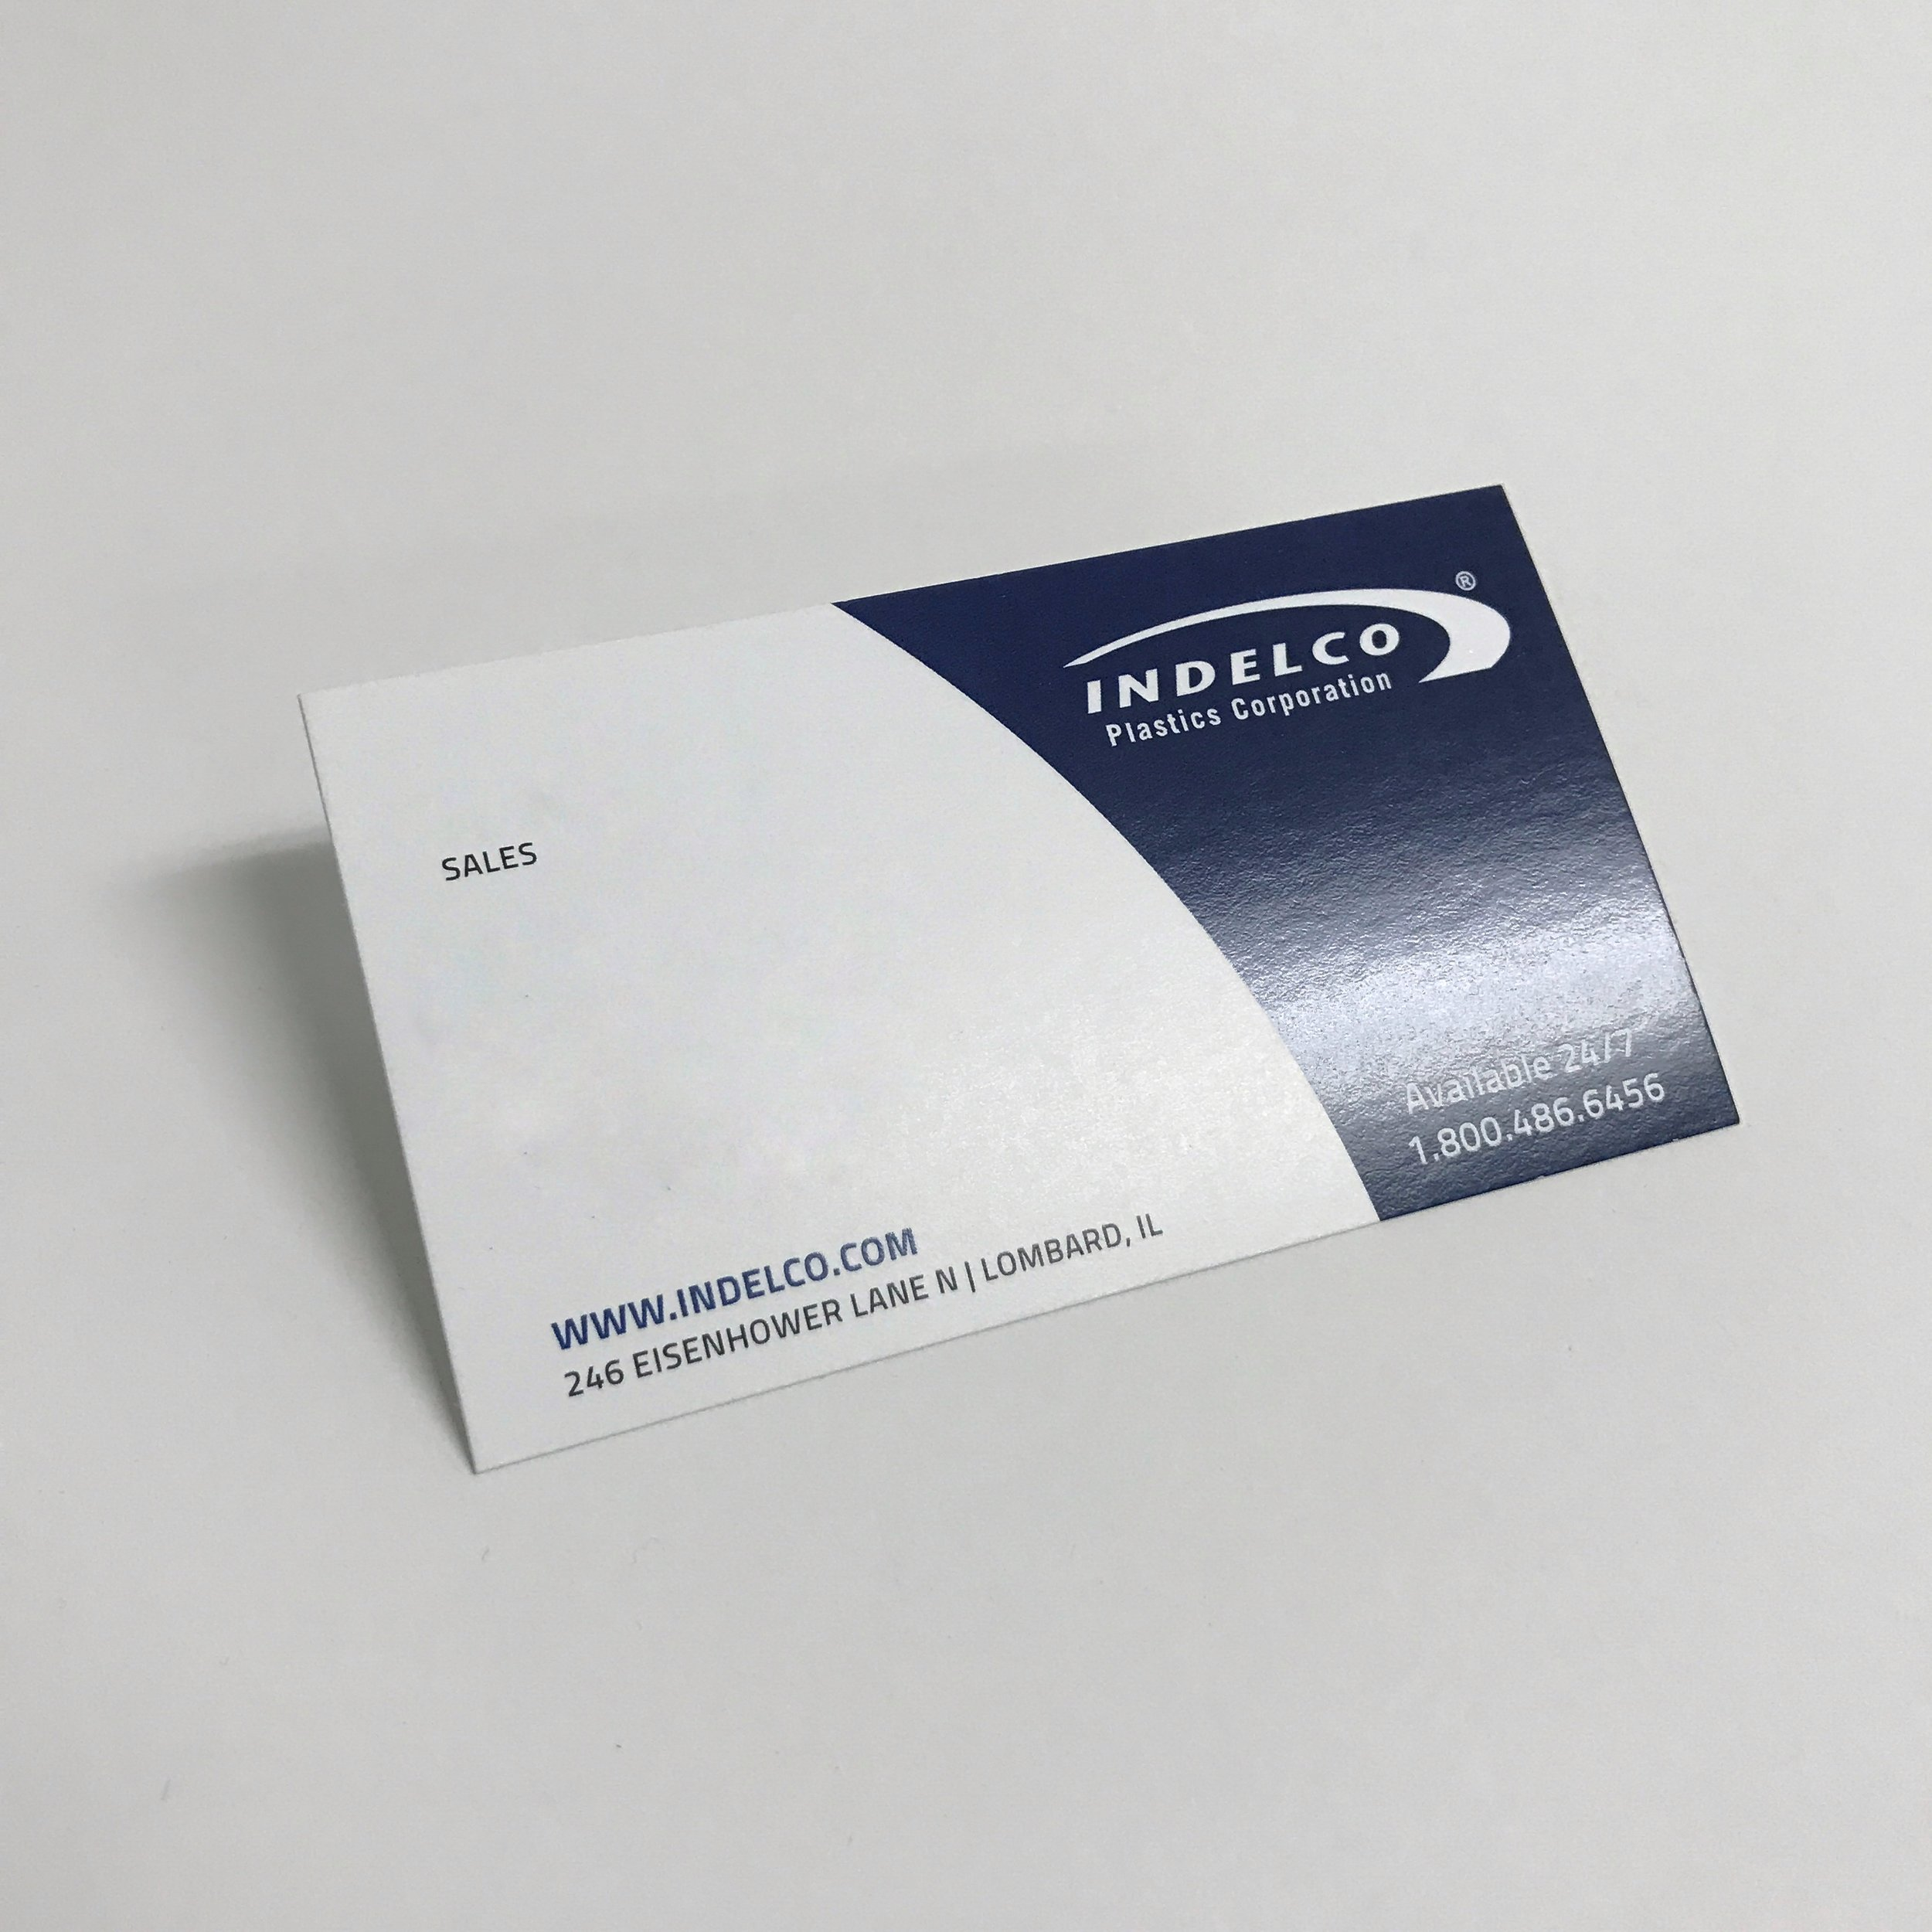 Quality standard business cards printed in Minnesota